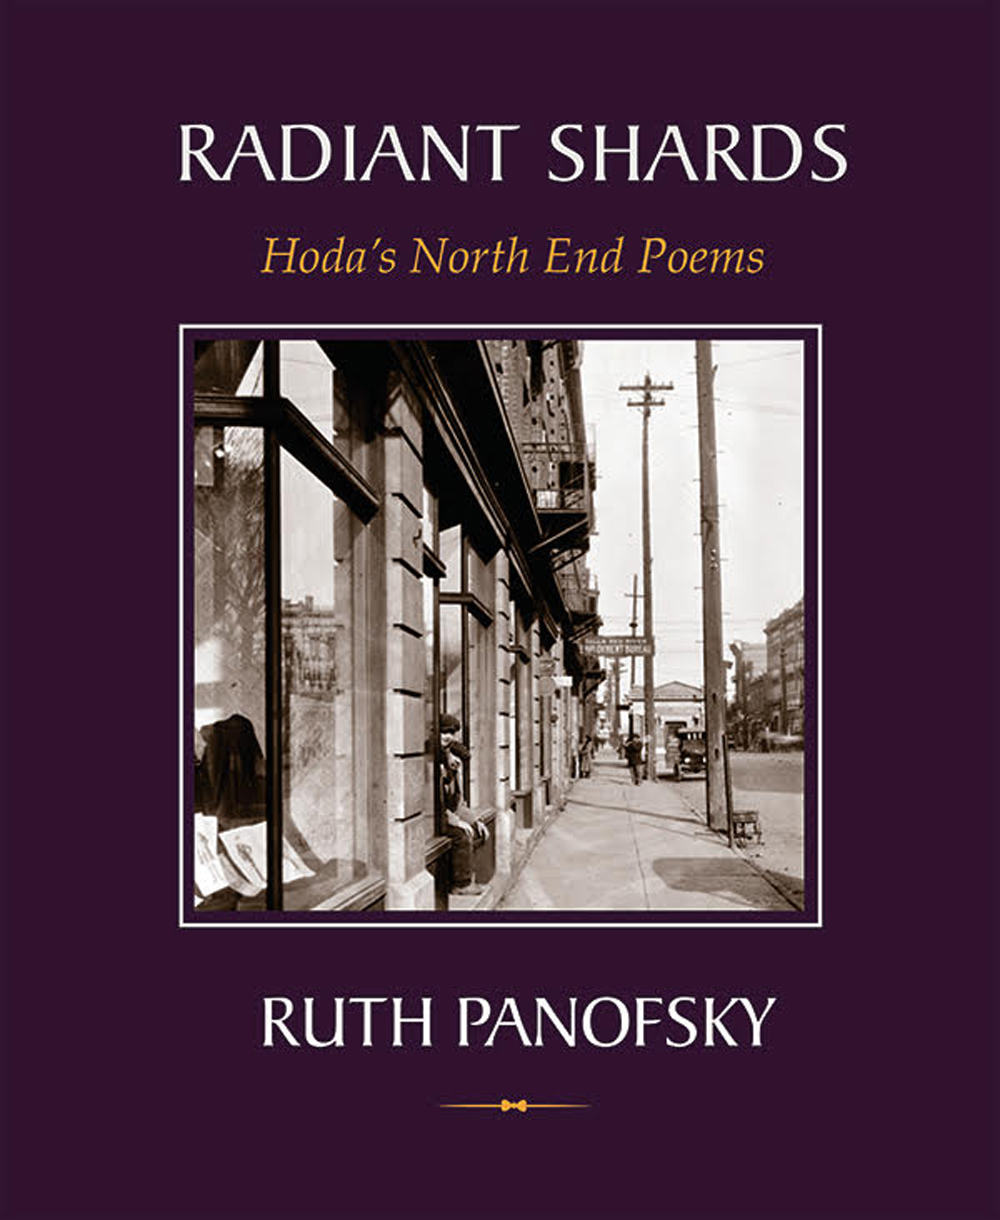 Radiant Shards: Hoda's North End Poems